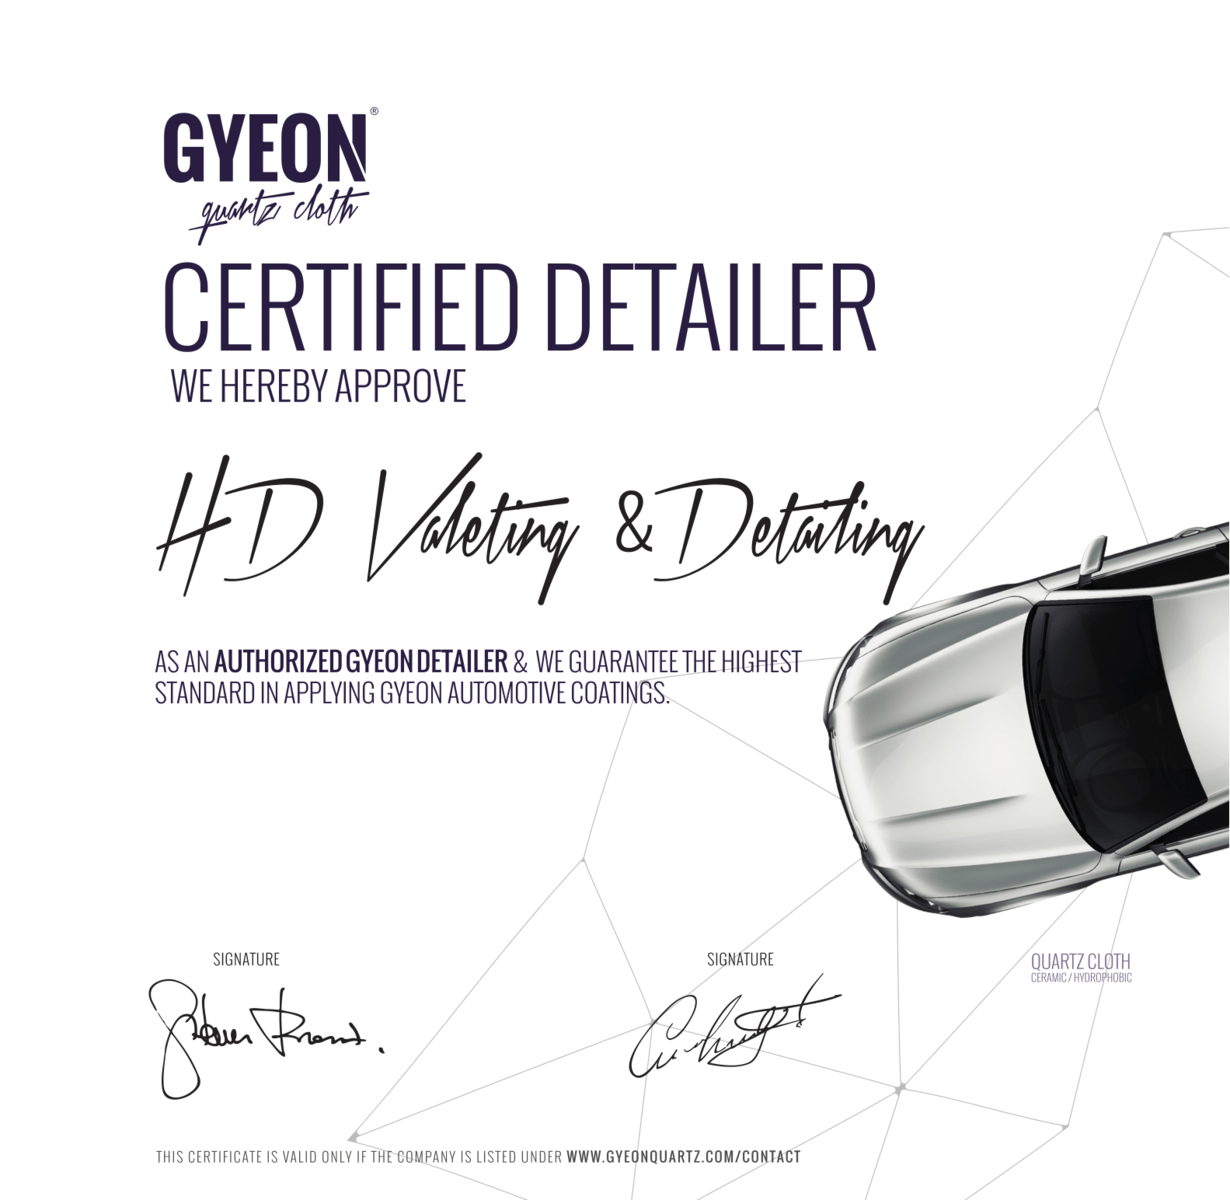 GYEON Certified Detailer Norfolk